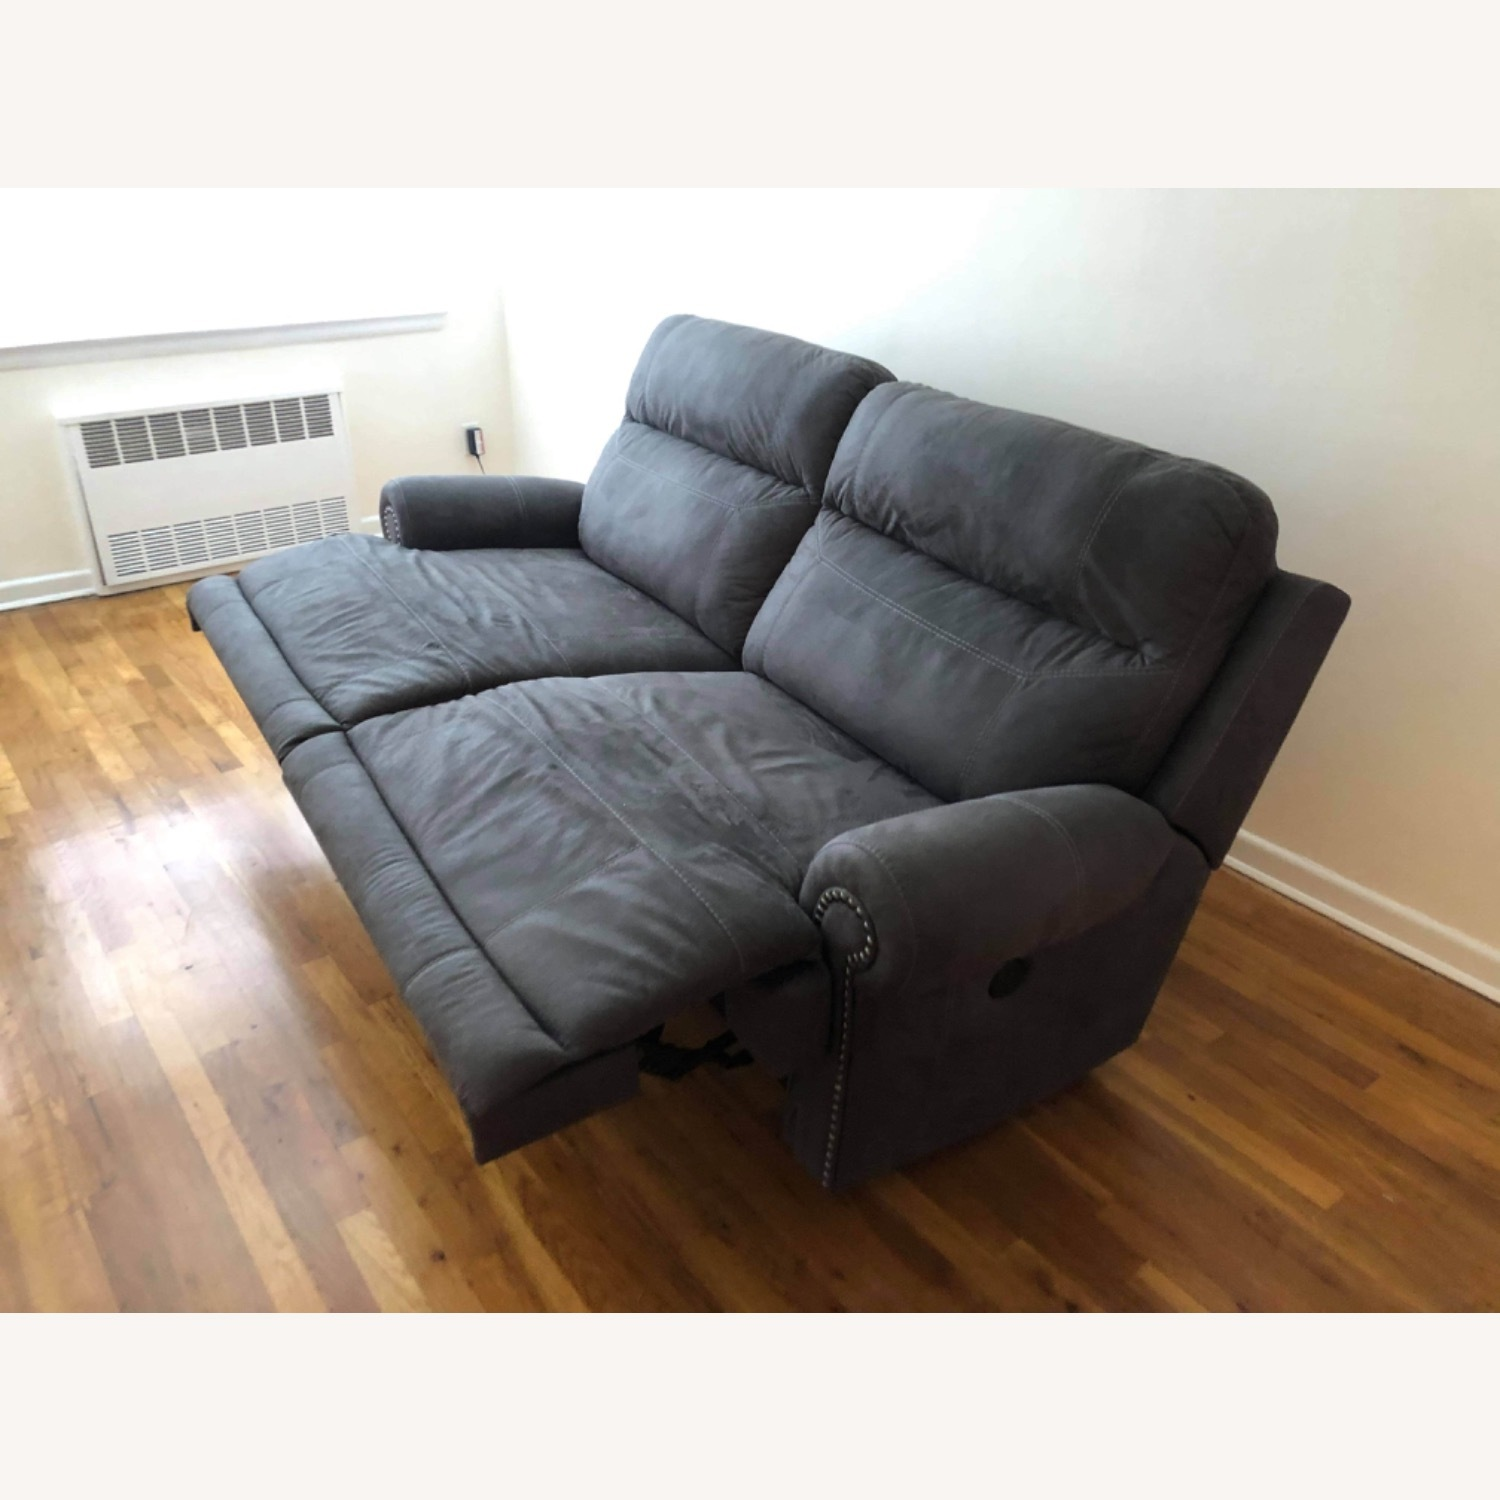 Wanek Furniture Company Electric Recliner Sofa - image-5